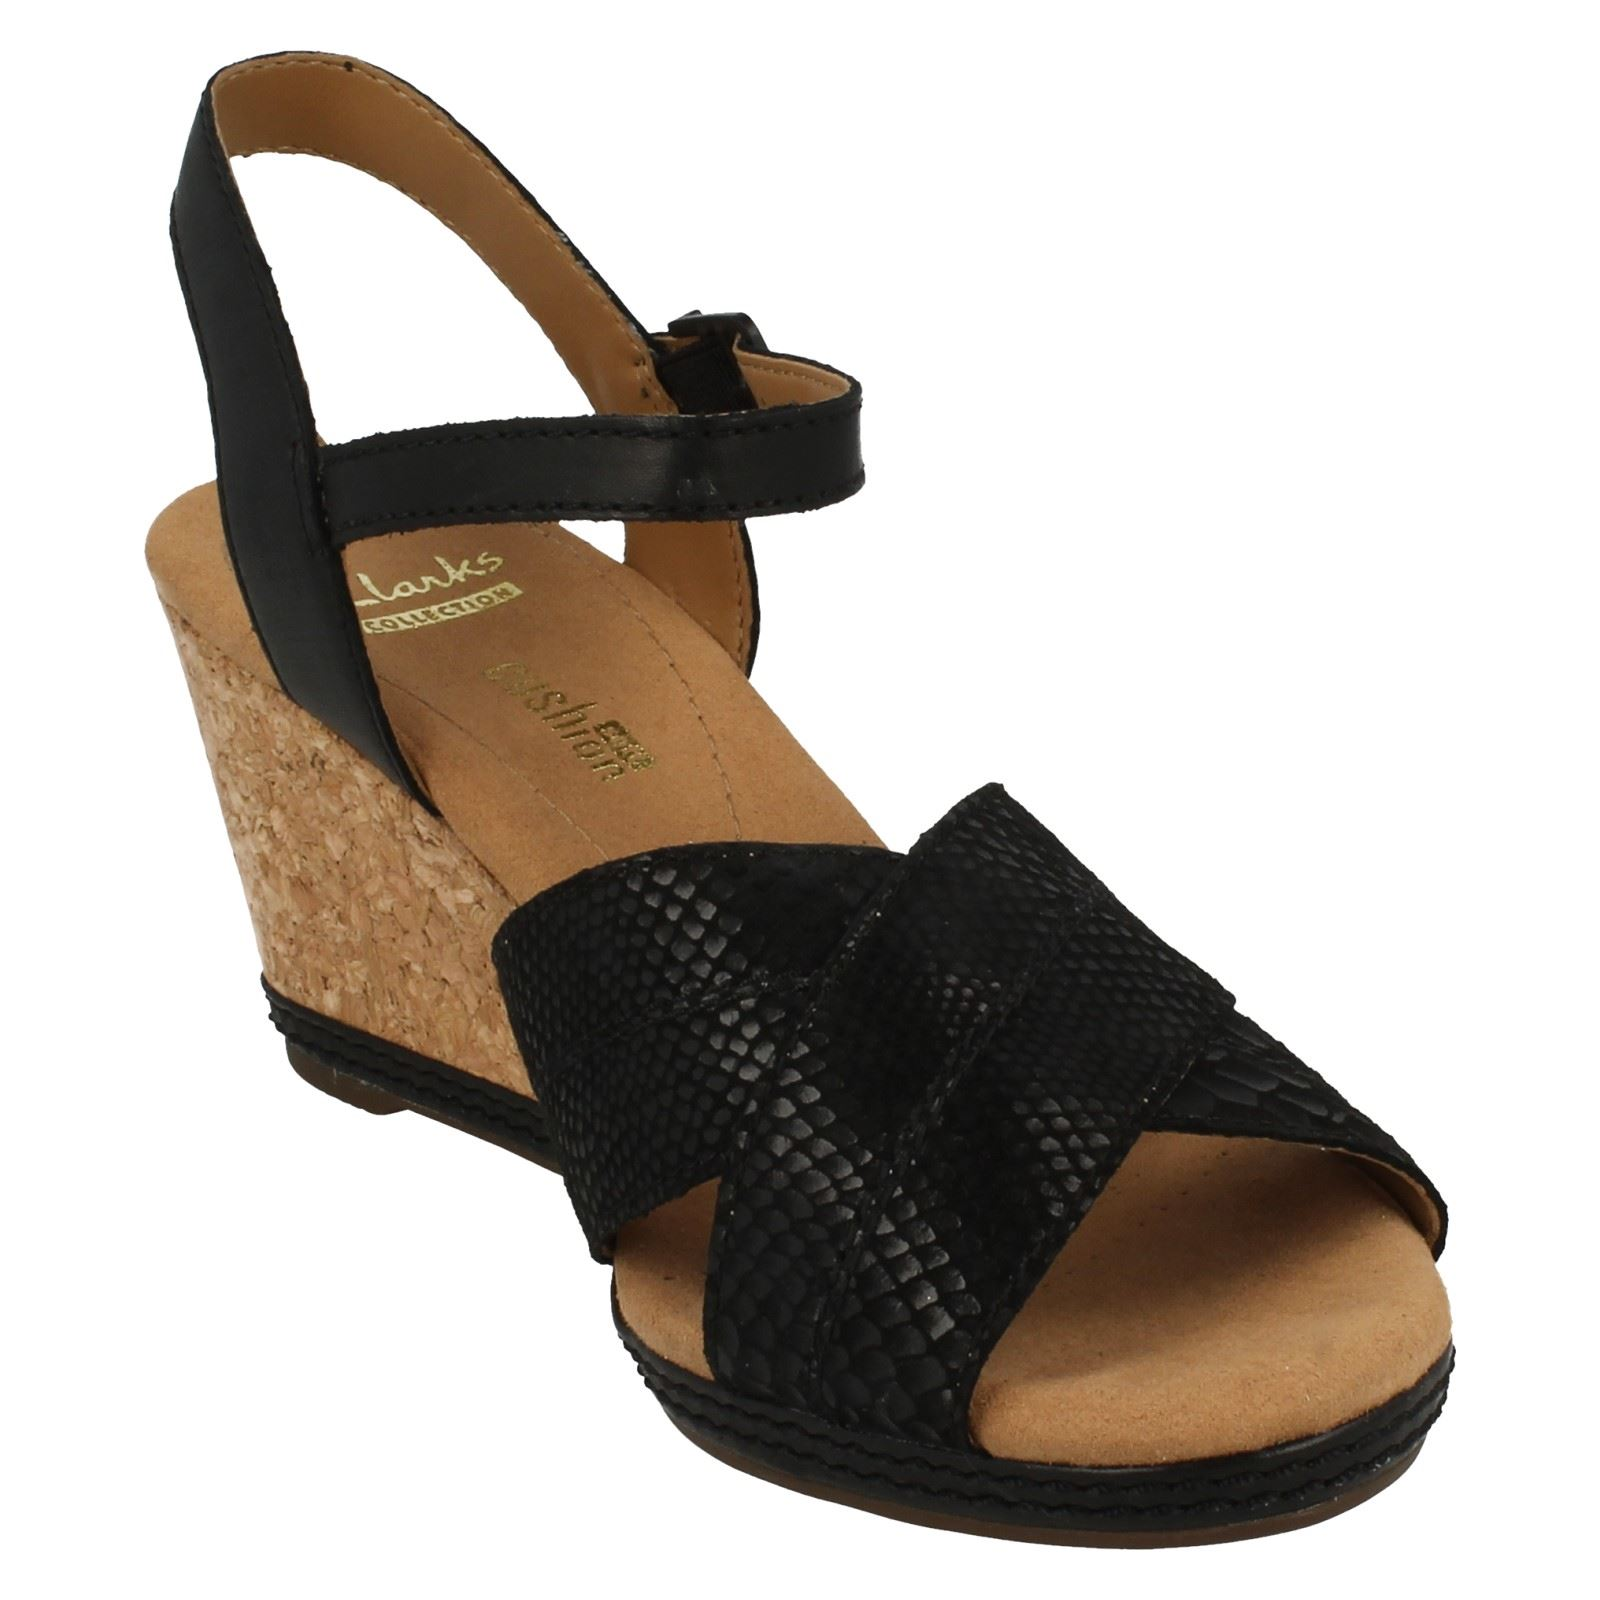 8f6ab0cce43 Clarks-Ladies-Open-Toe-Wedge-Sandals-Helio-Latitude thumbnail